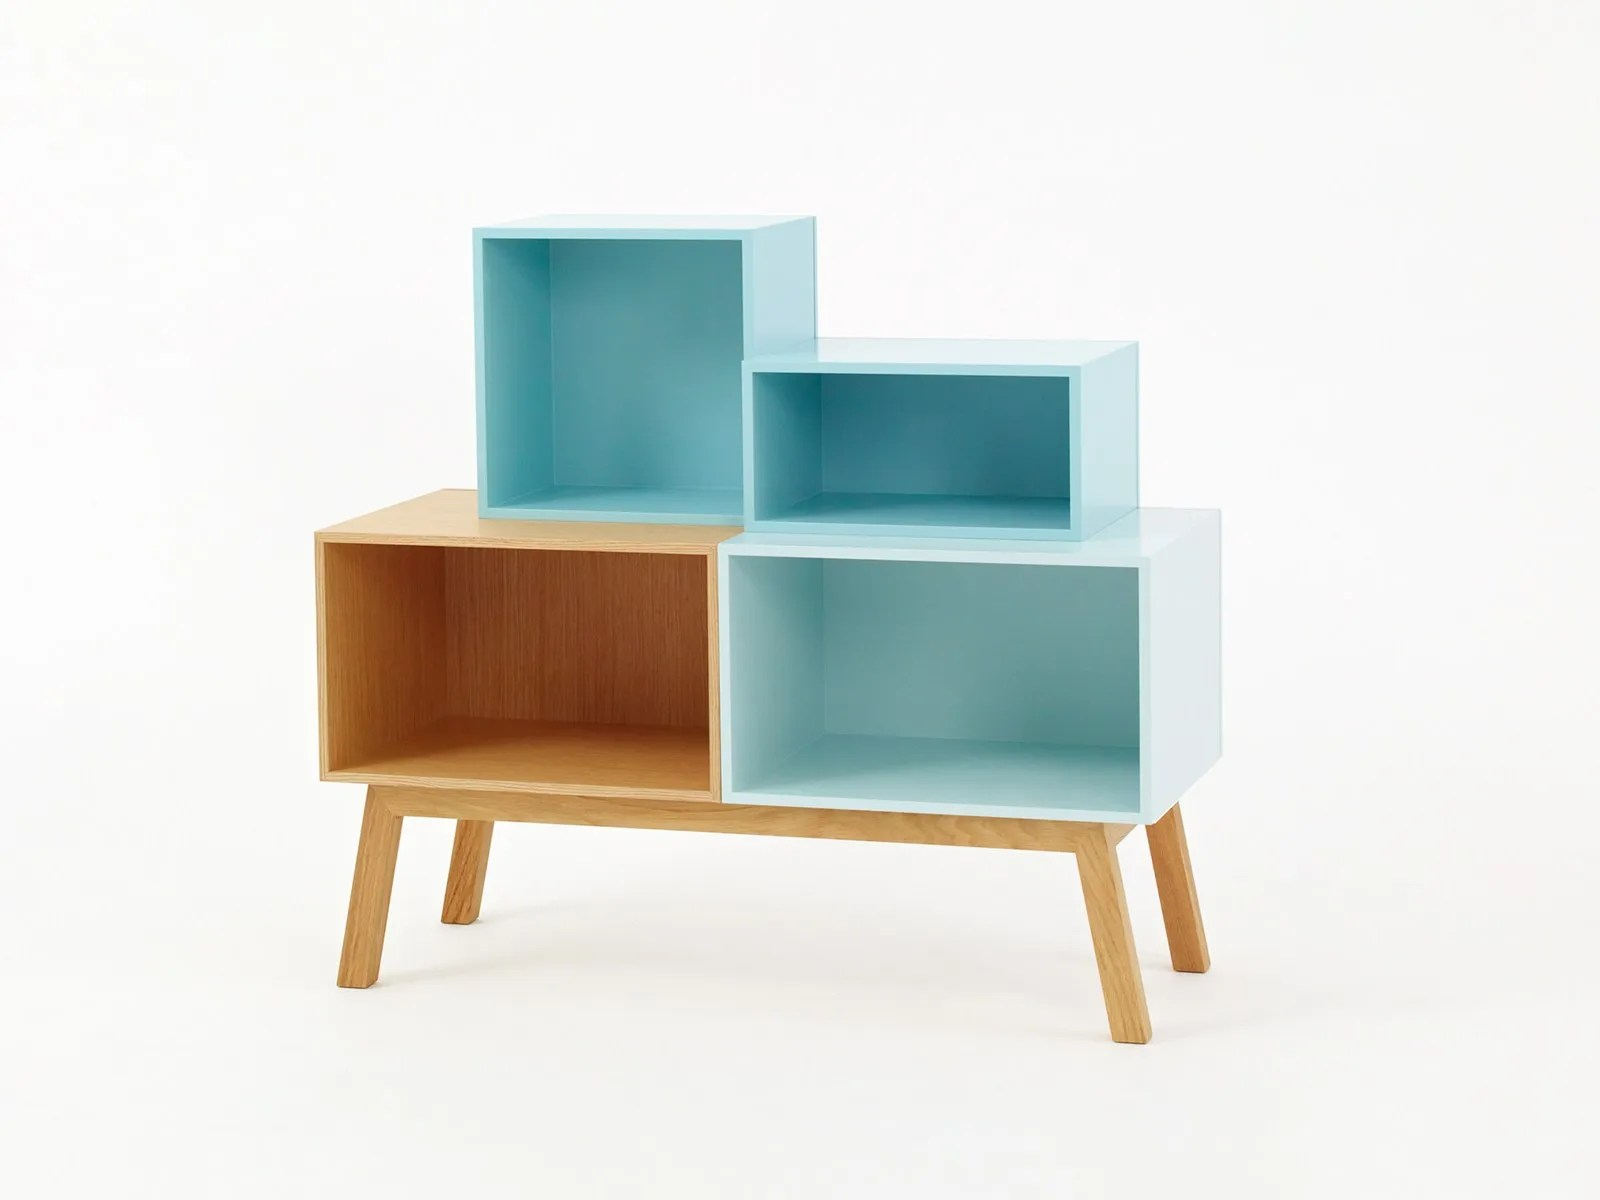 Modular Furniture Cubit Modular Furniture System With Endless Design